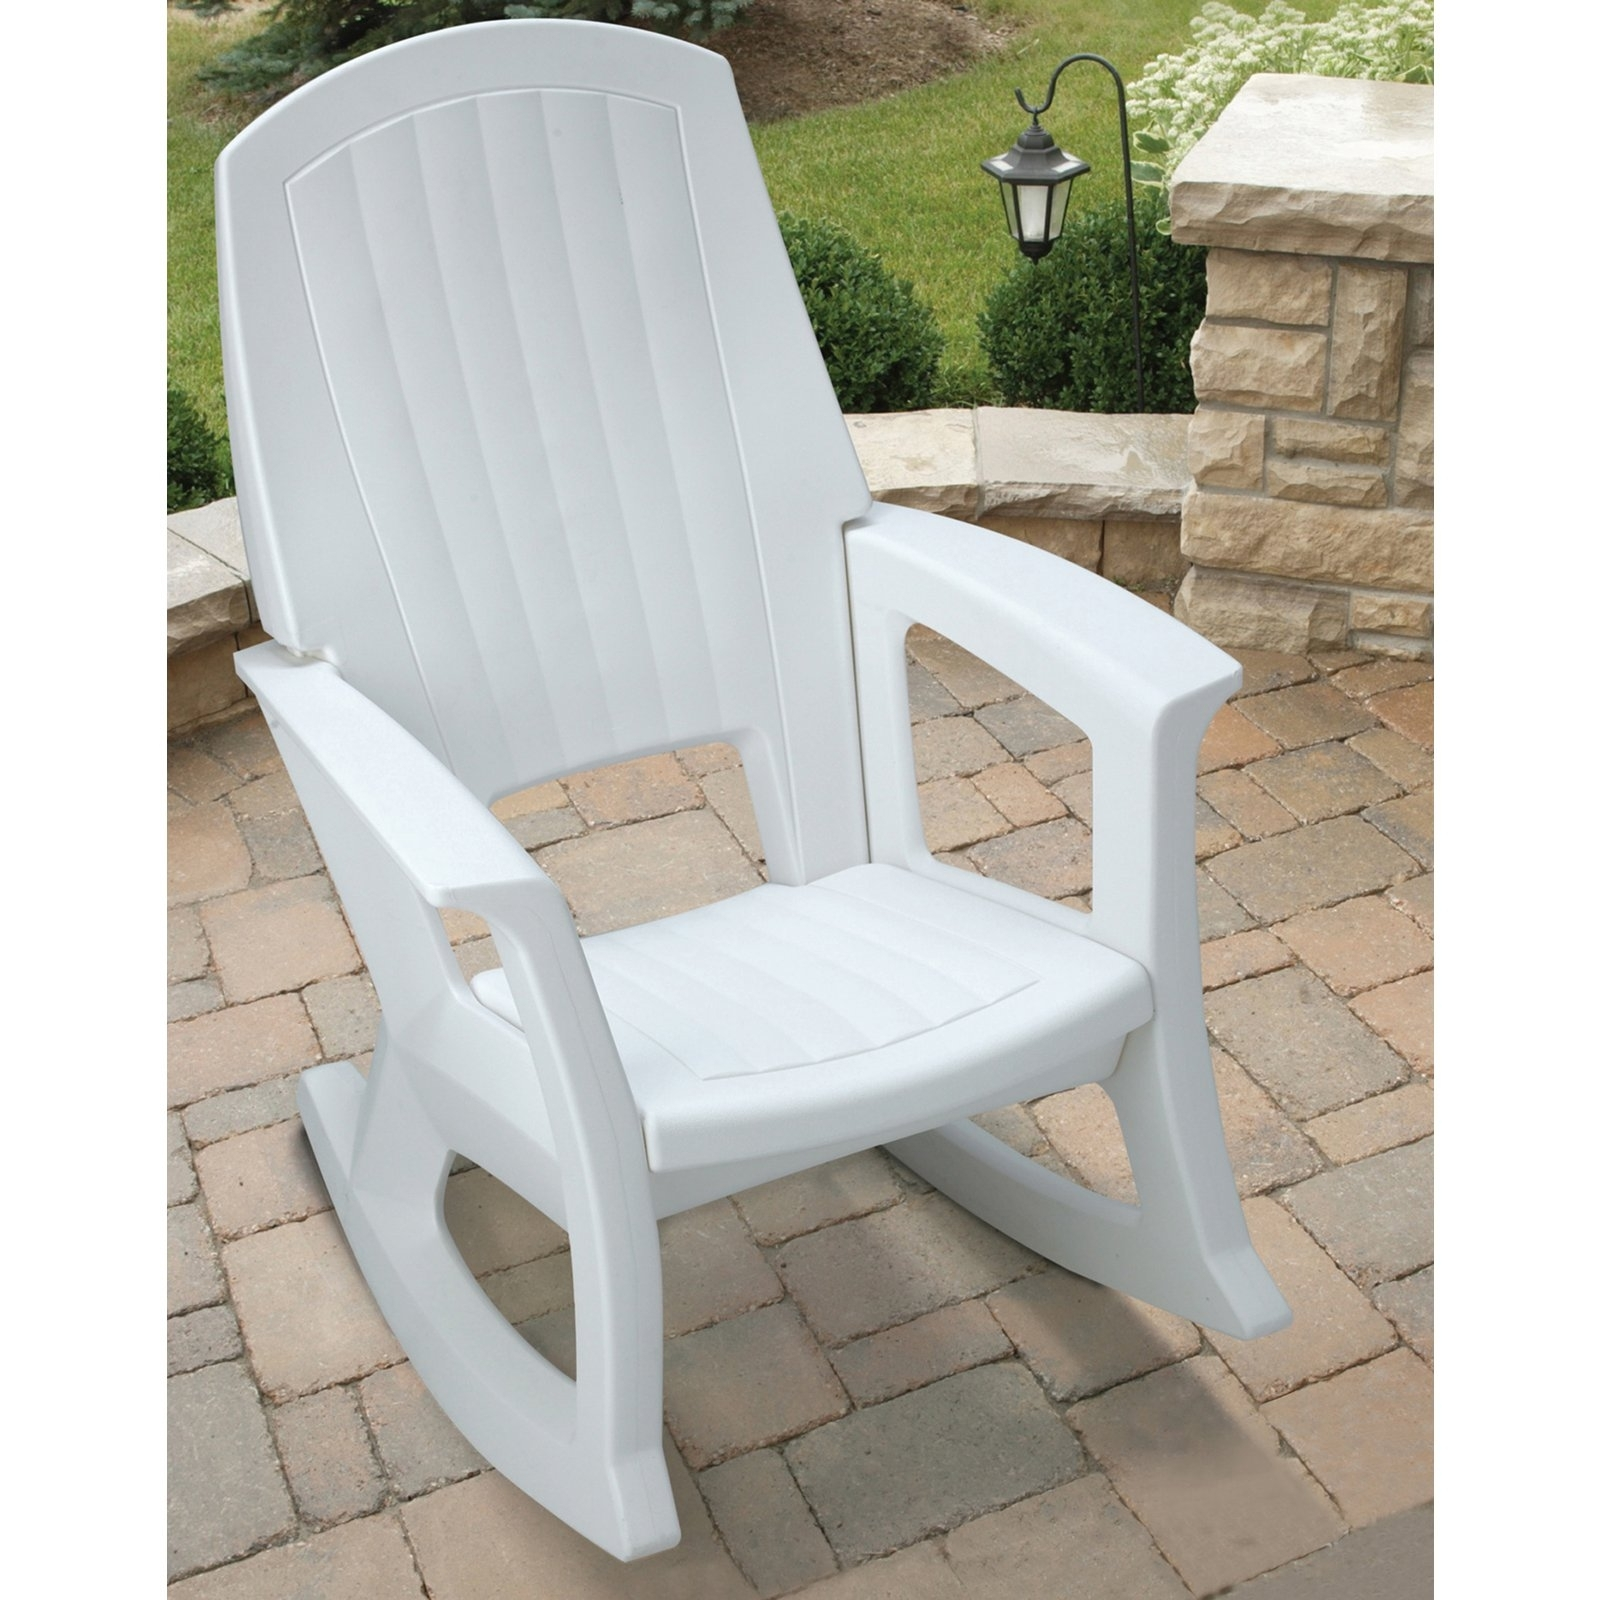 Semco Recycled Plastic Rocking Chair Outdoor Rocking White Porch Within Current White Patio Rocking Chairs (View 6 of 15)